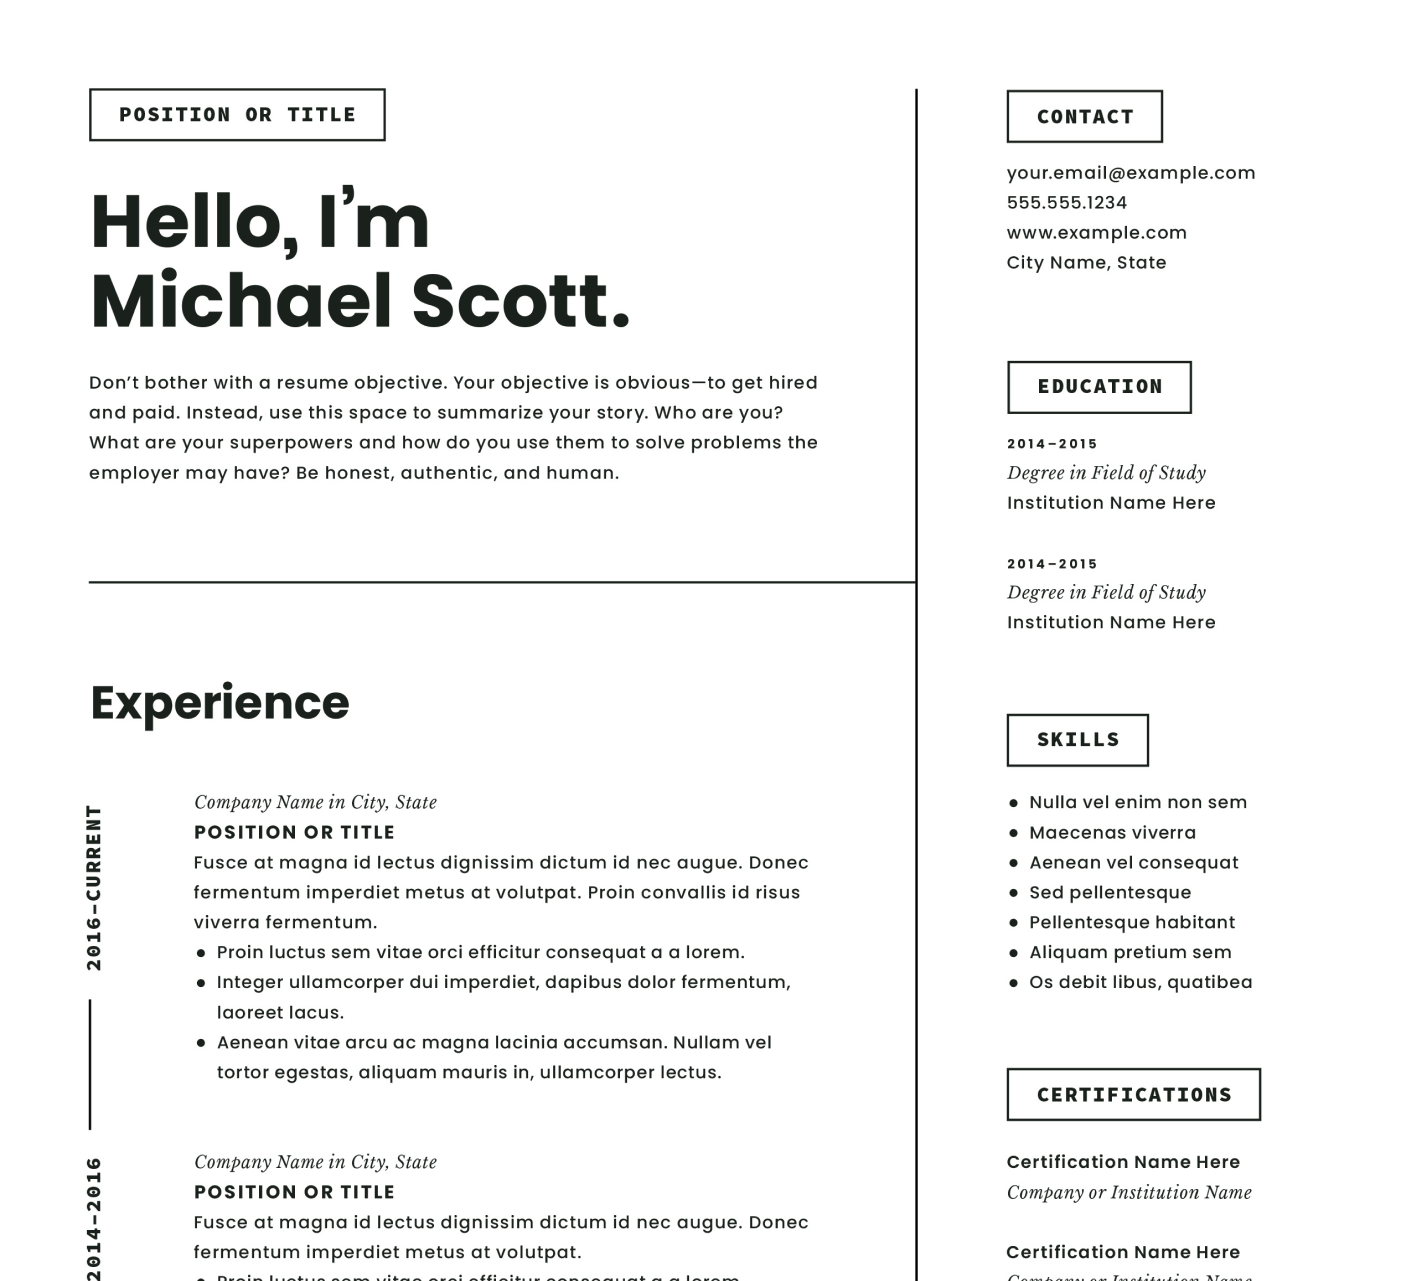 A modern resume design with two columns of information.